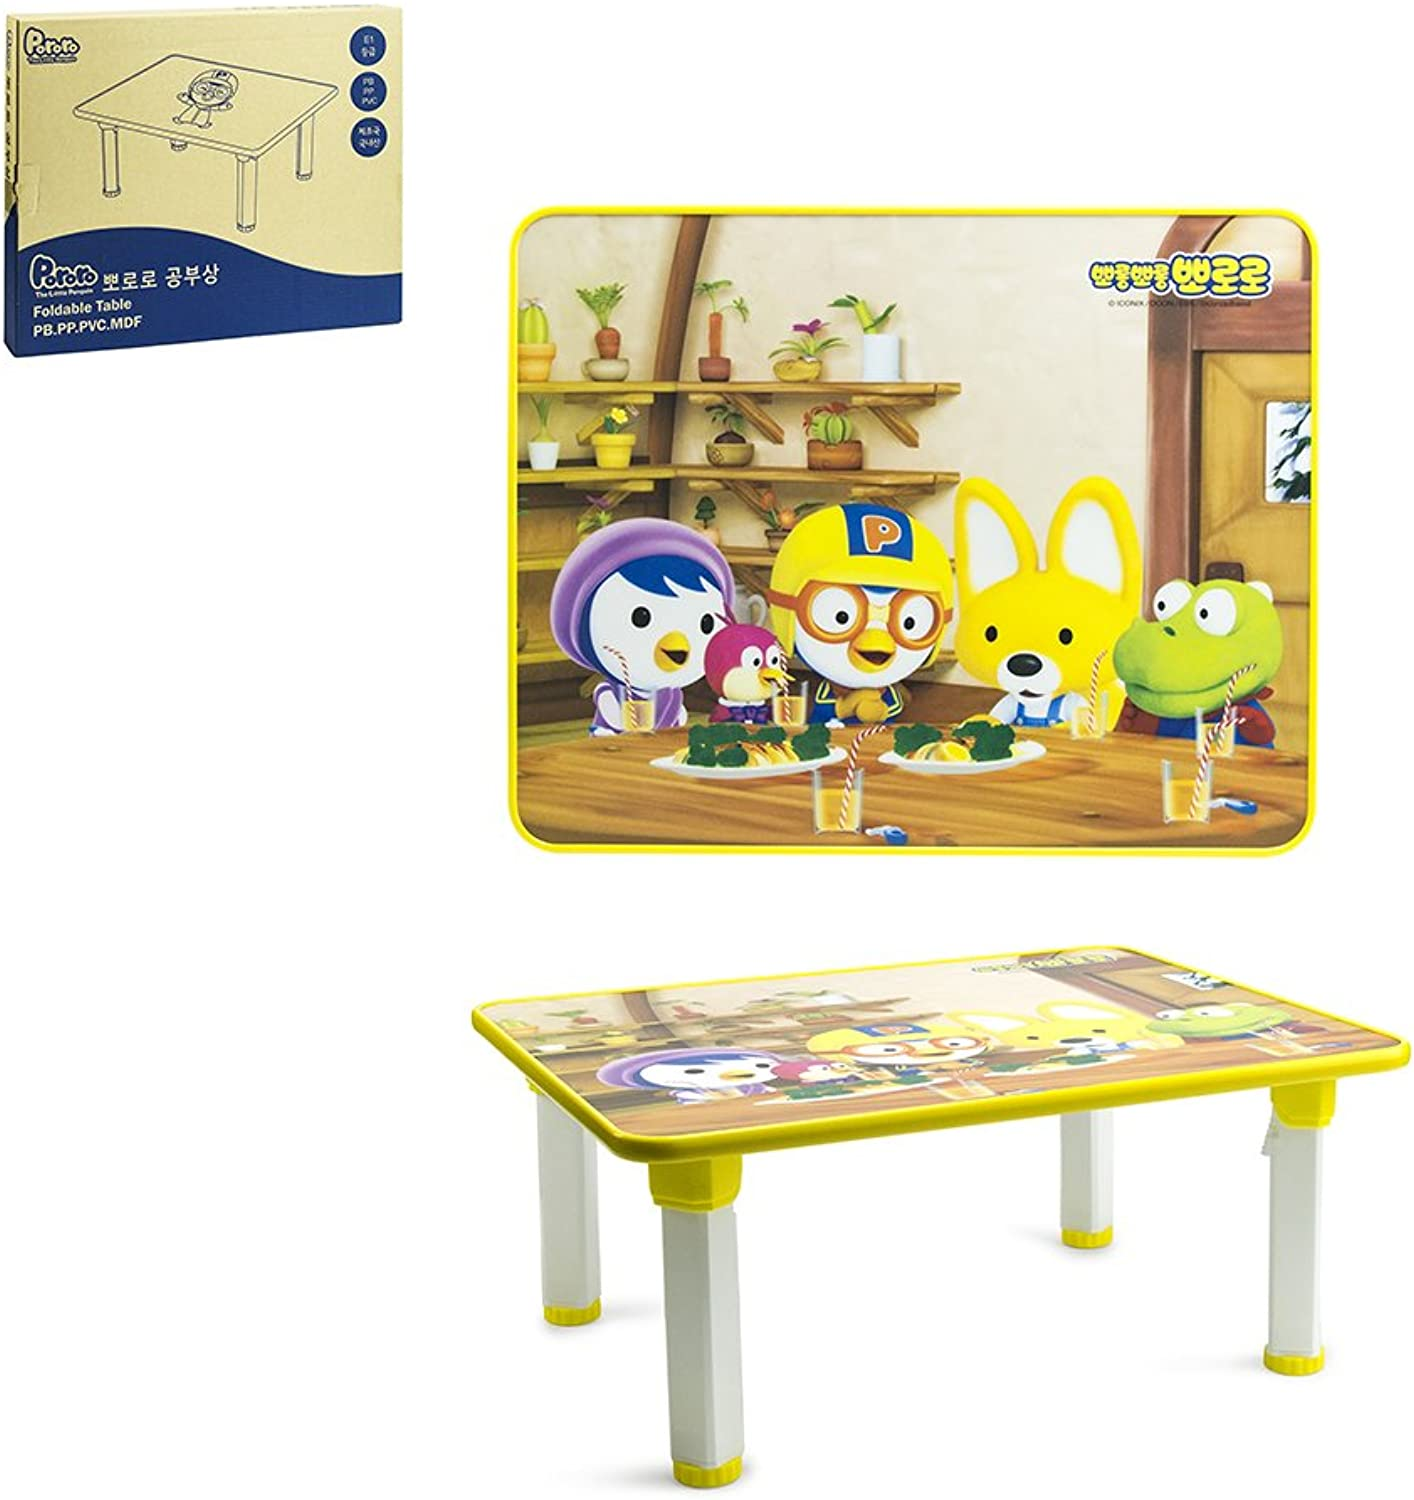 Pgoldro Kids Activity Table with Folding Legs (Yellow)